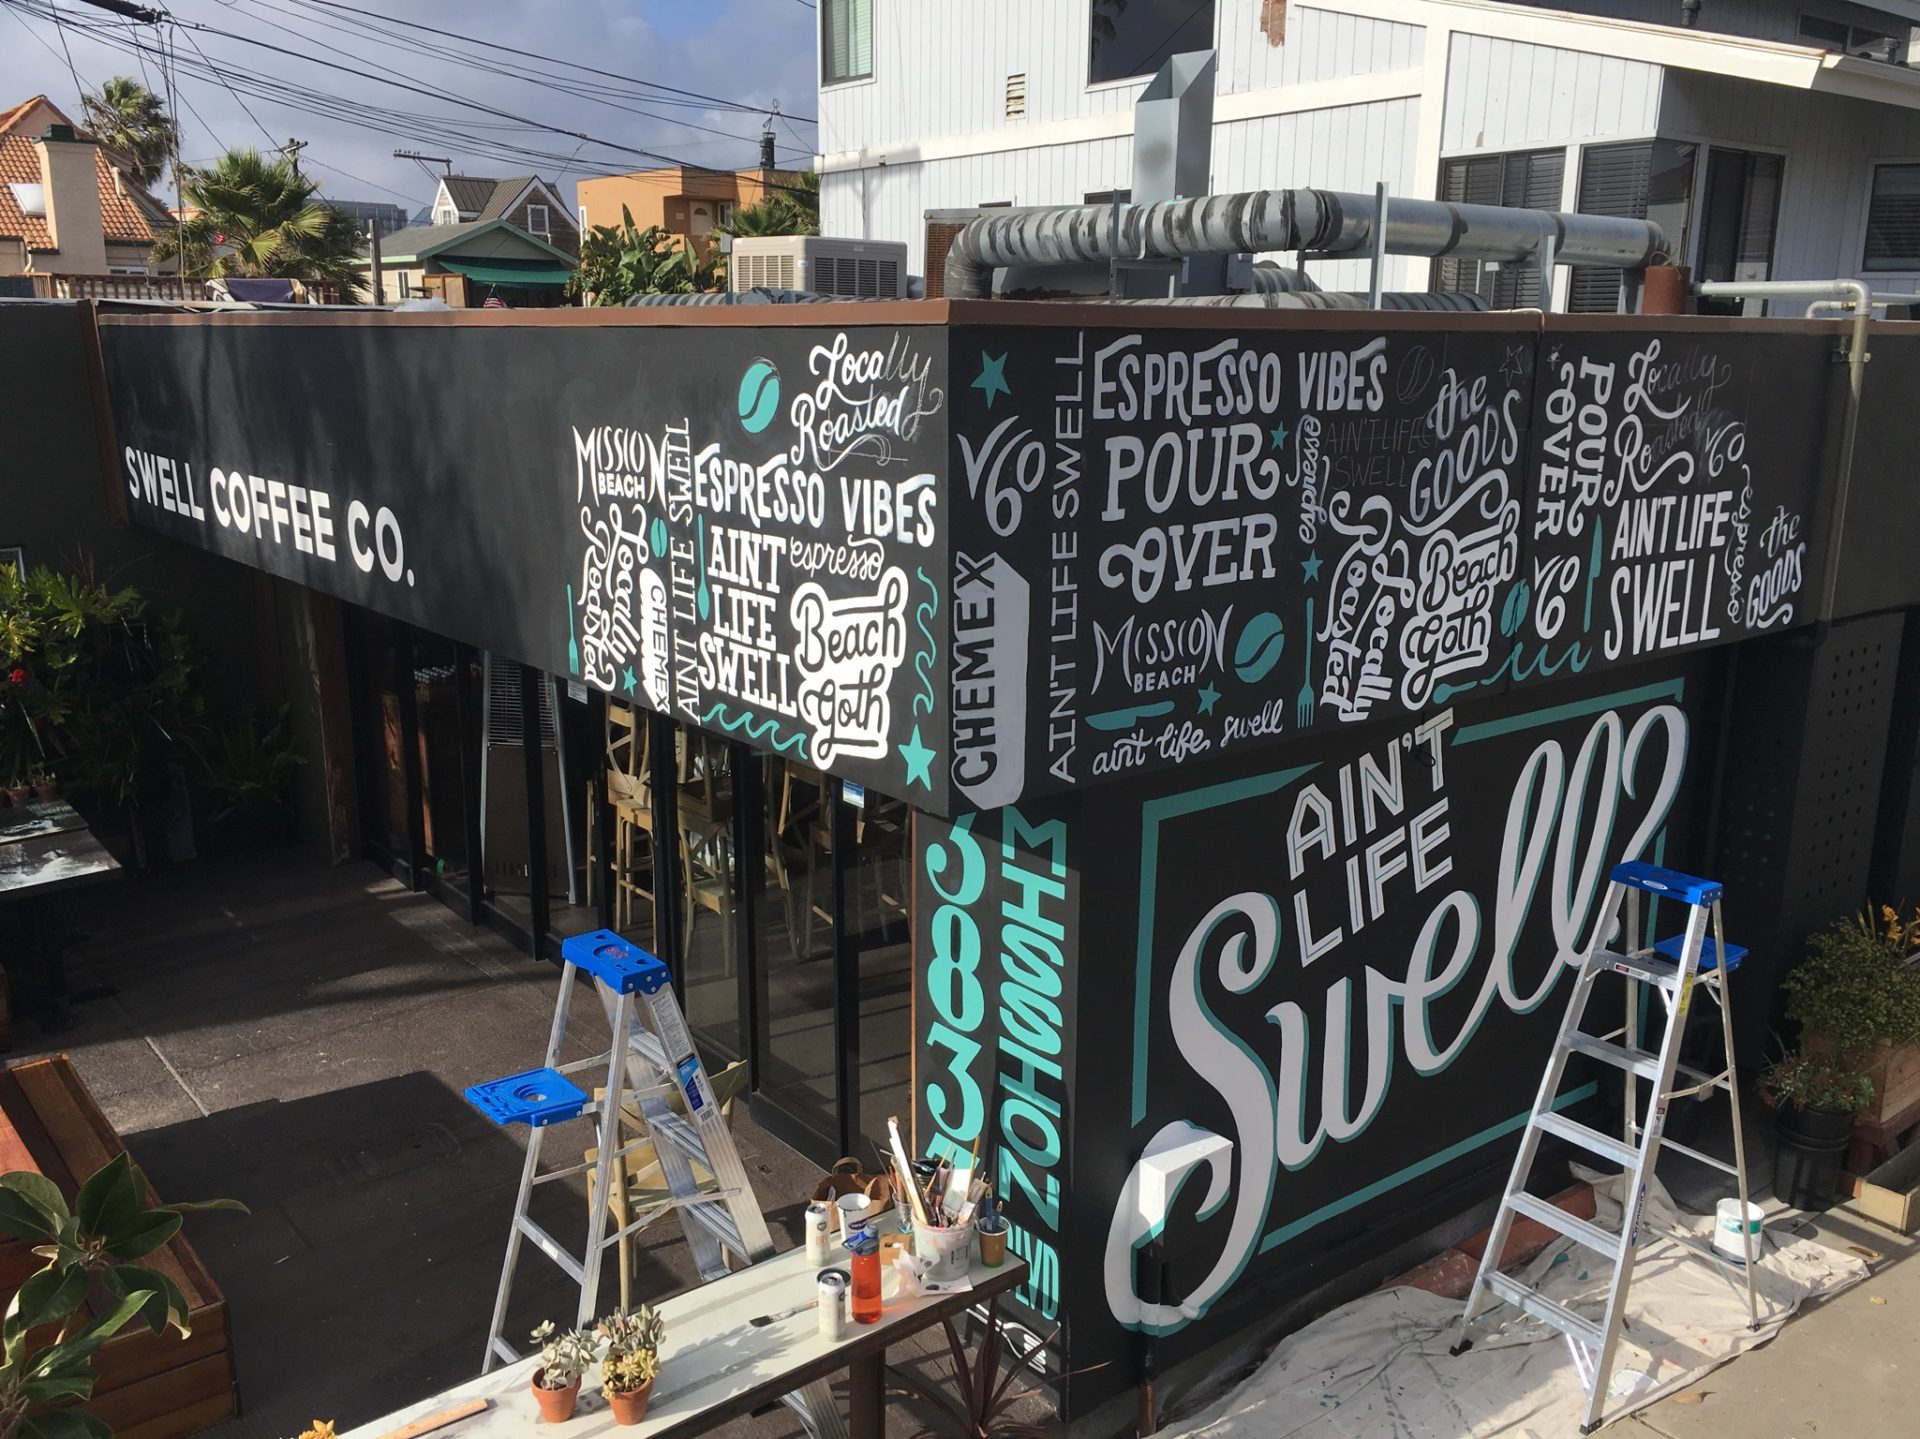 swell coffee mural and shop makeover custom, handpainted letter collage